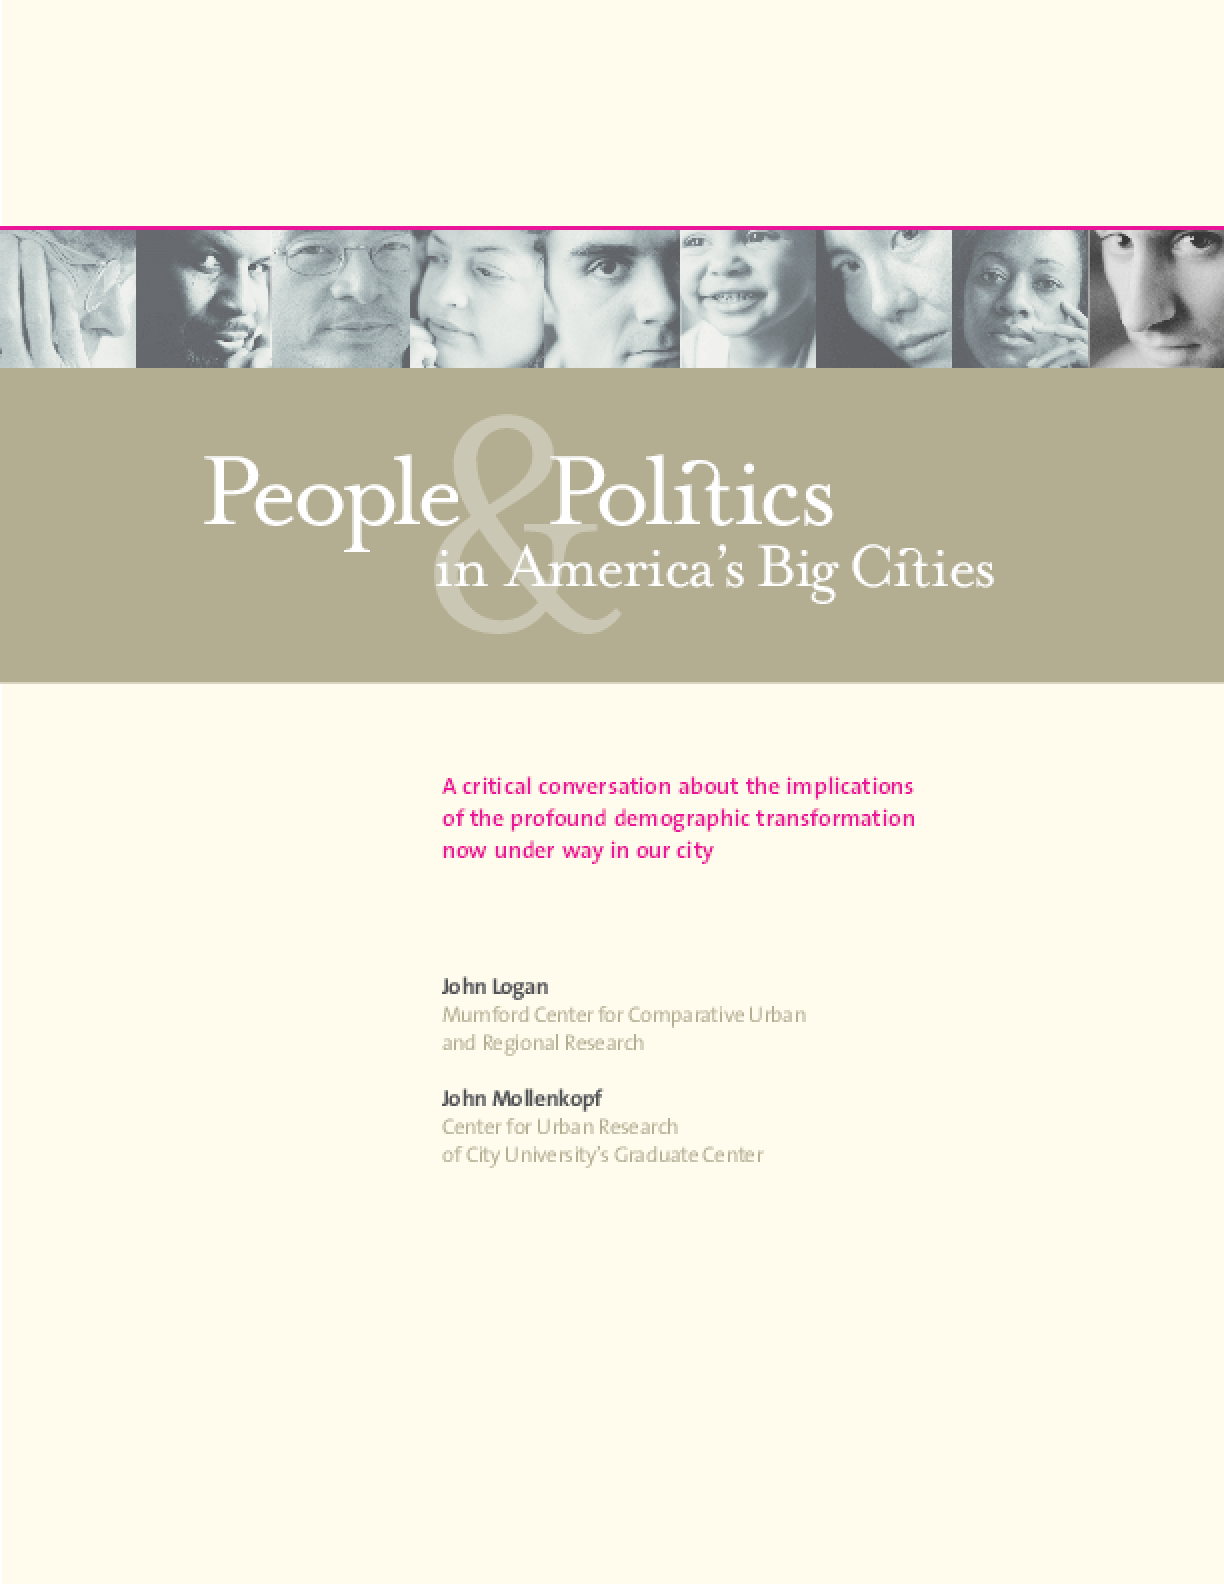 People & Politics in America's Big Cities